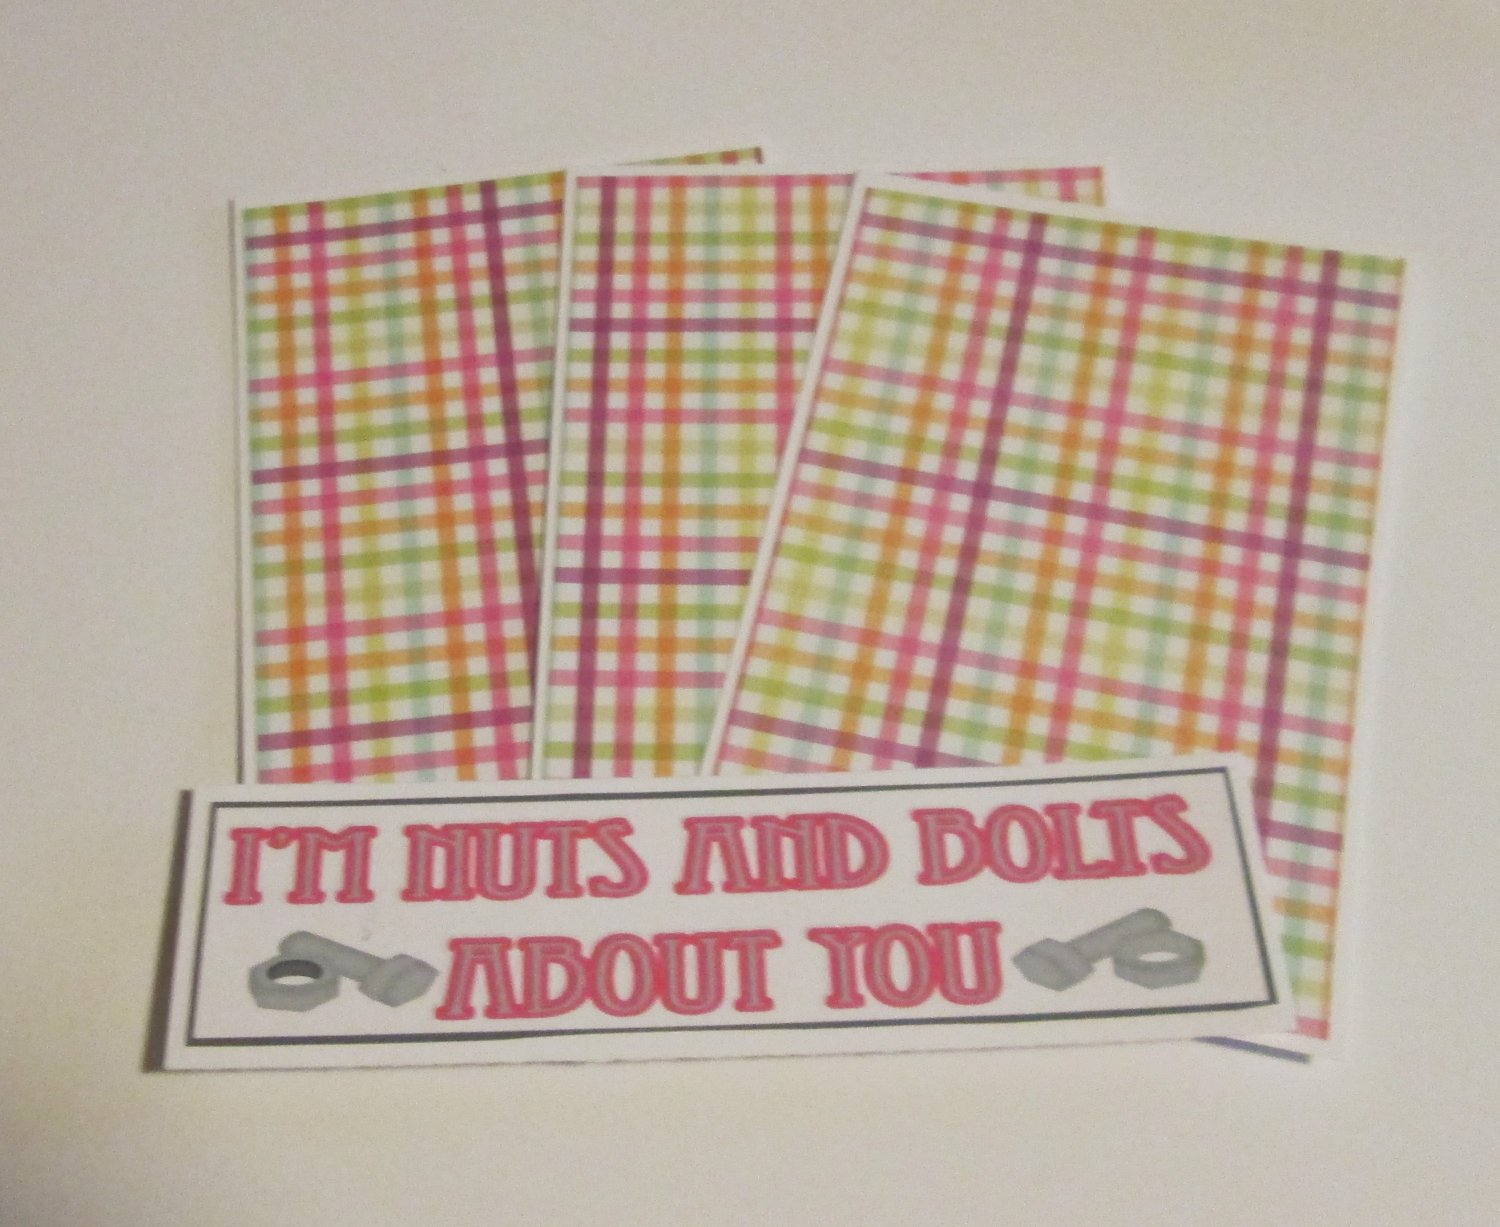 I'm Nuts and Bolts About You - 4pc Mat Set